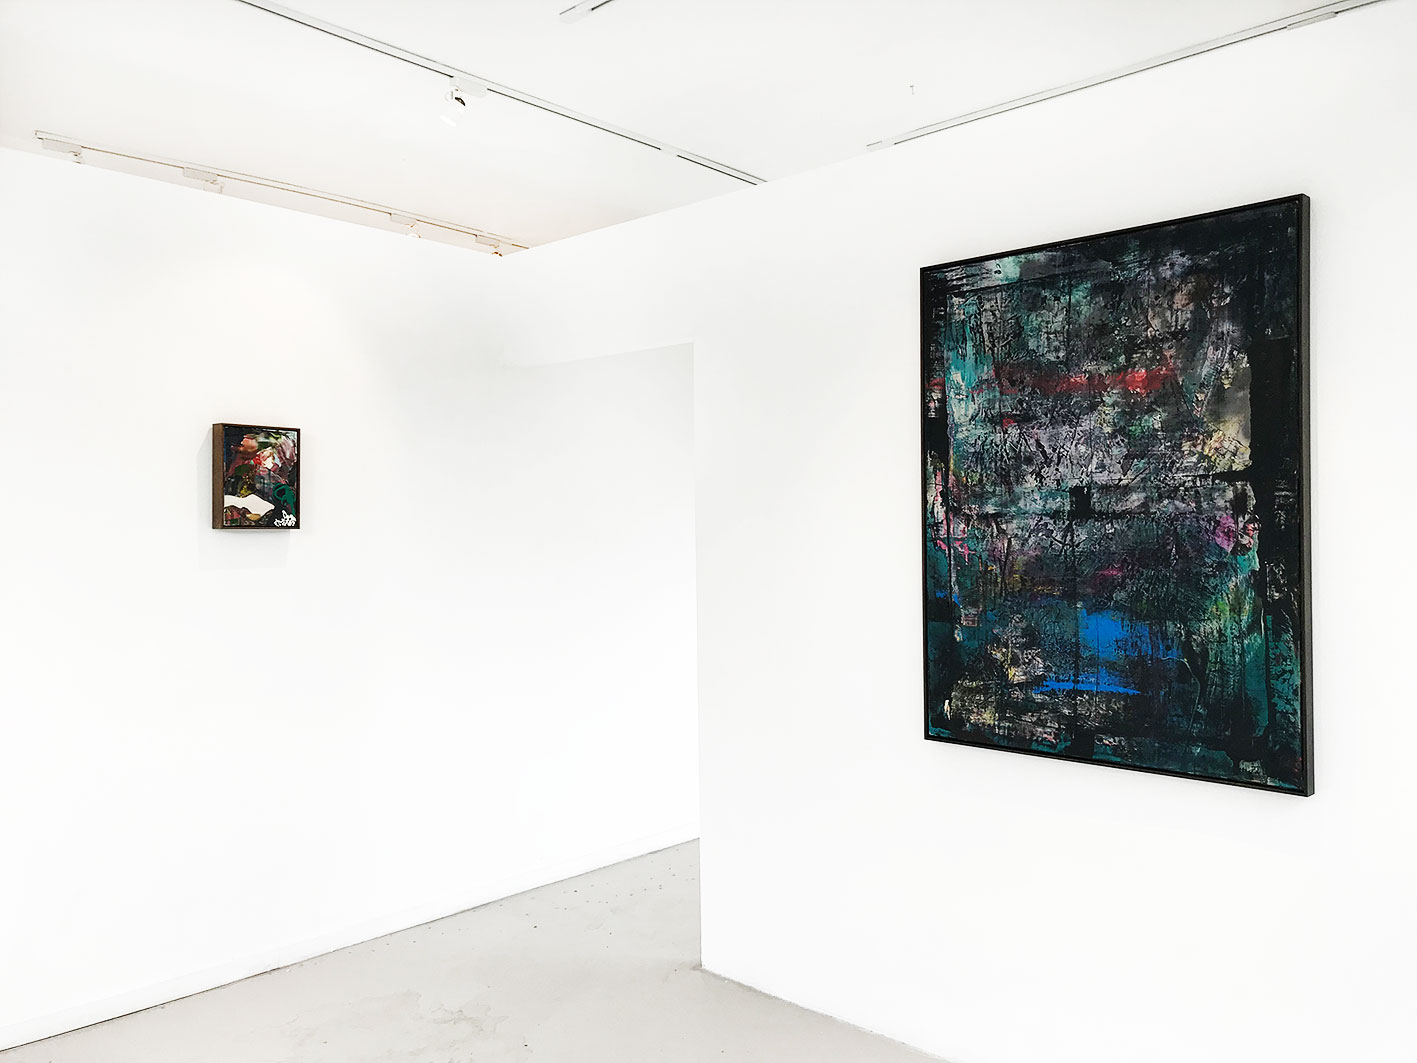 (Left to Right) Nathan Jokovich -  Navigating a Landscape of Pulsating Contradiction  2016 Oil and Acrylic on Canvas 18 x 24 cm -  Nathan Jokovich -  Abstraction Redaction  2018 Oil and Acrylic Aerosol on Canvas 102.4 x 152.4 cm